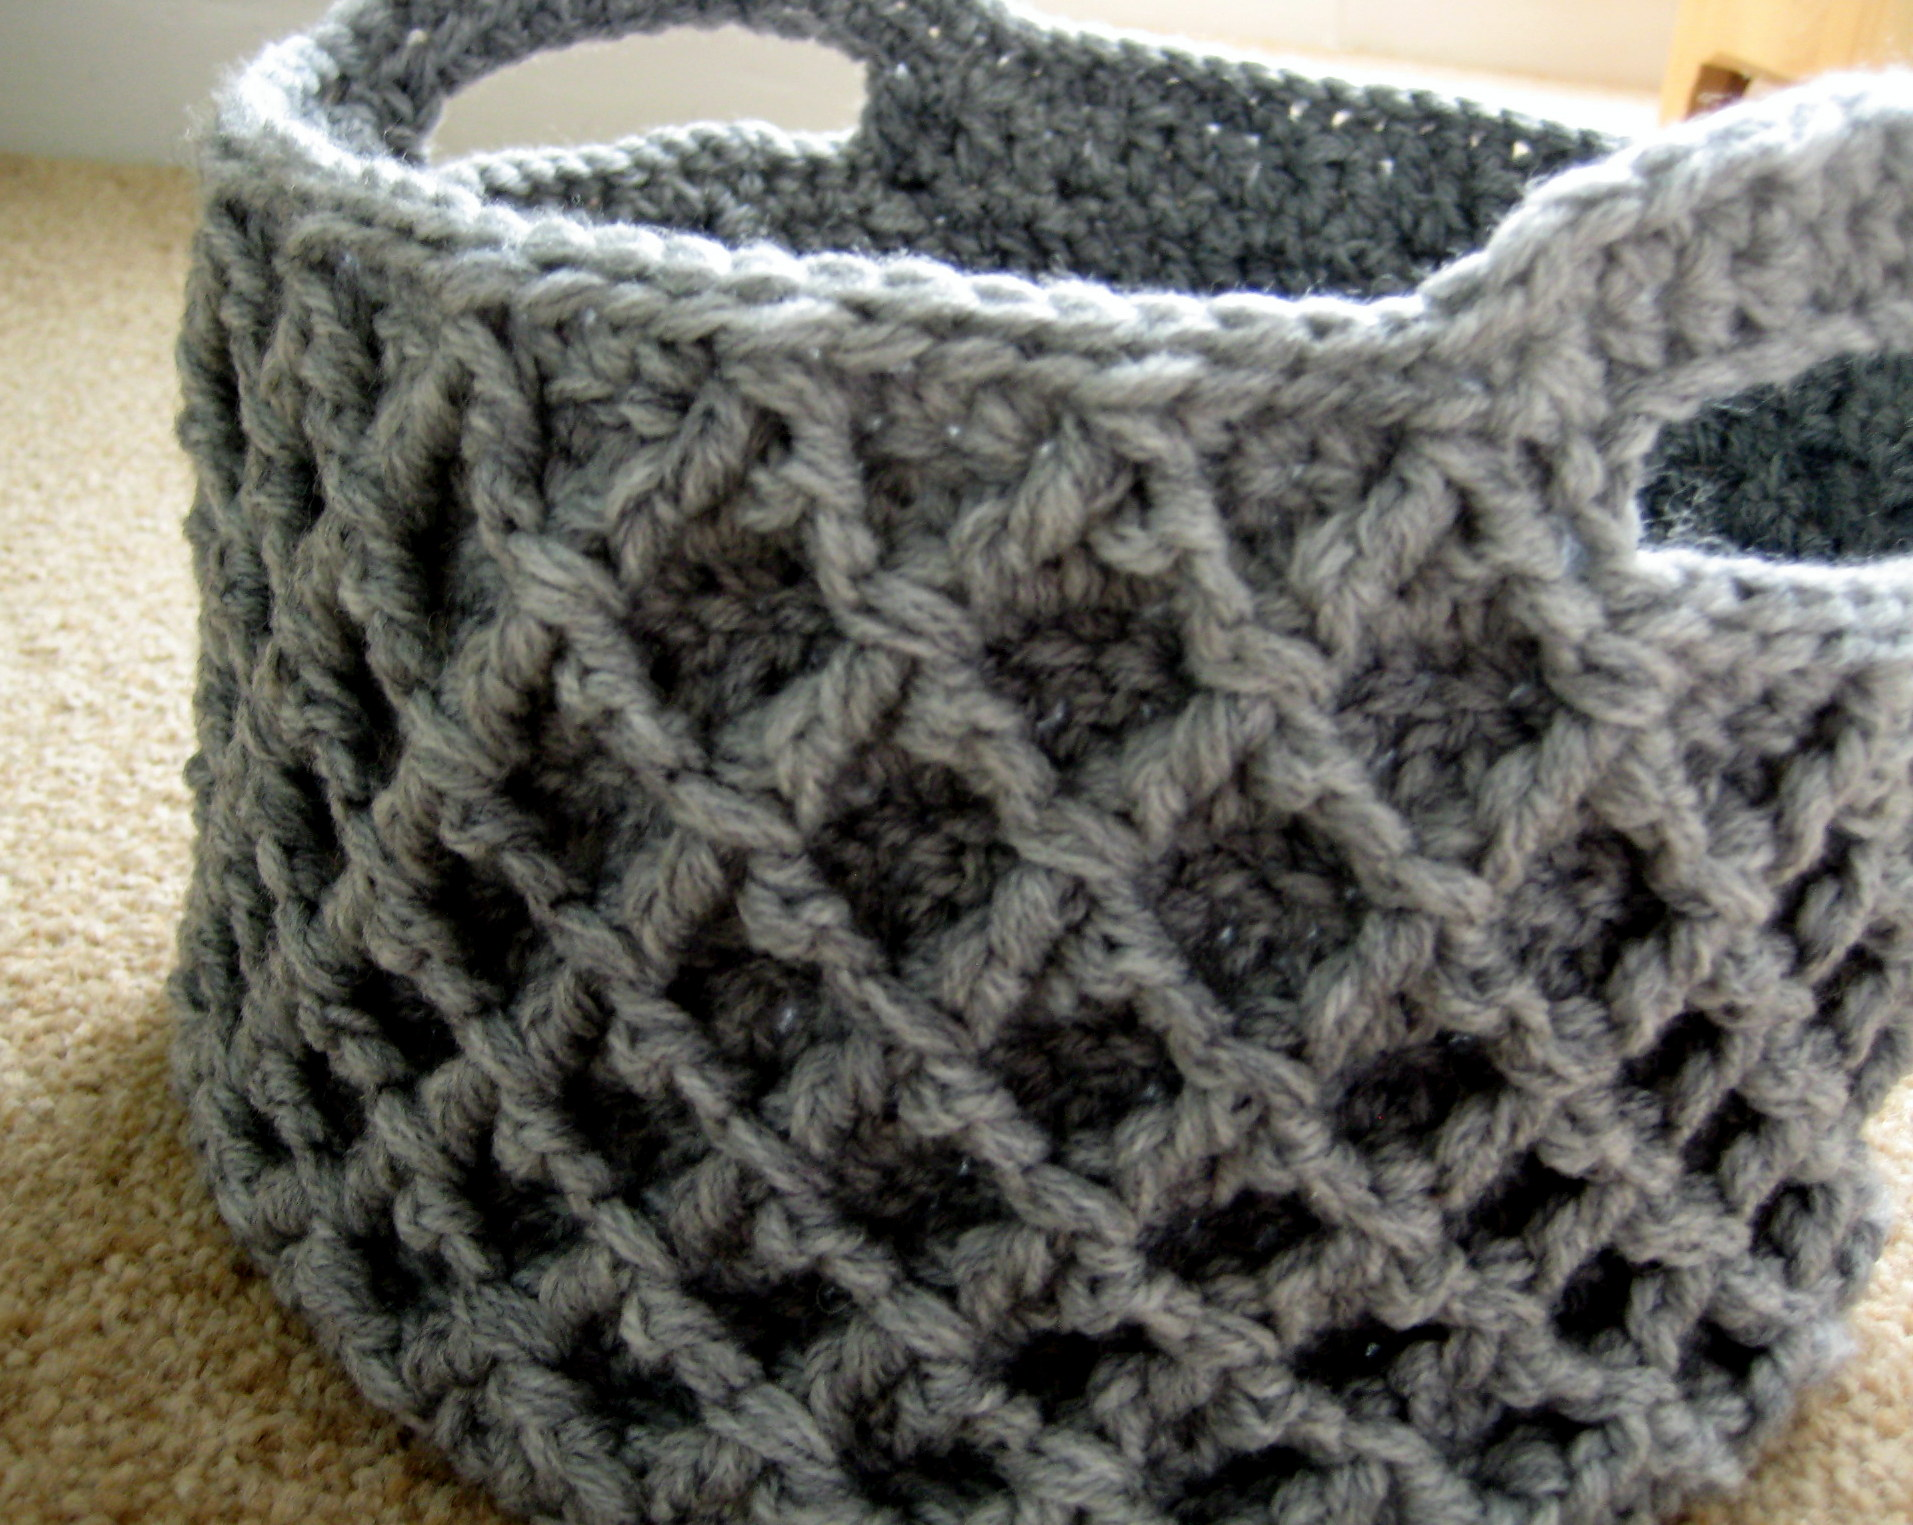 Diamond trellis basket make my day creative free pattern for crochet basket diamond trellis stitch makes the sides stiff and it is bankloansurffo Image collections